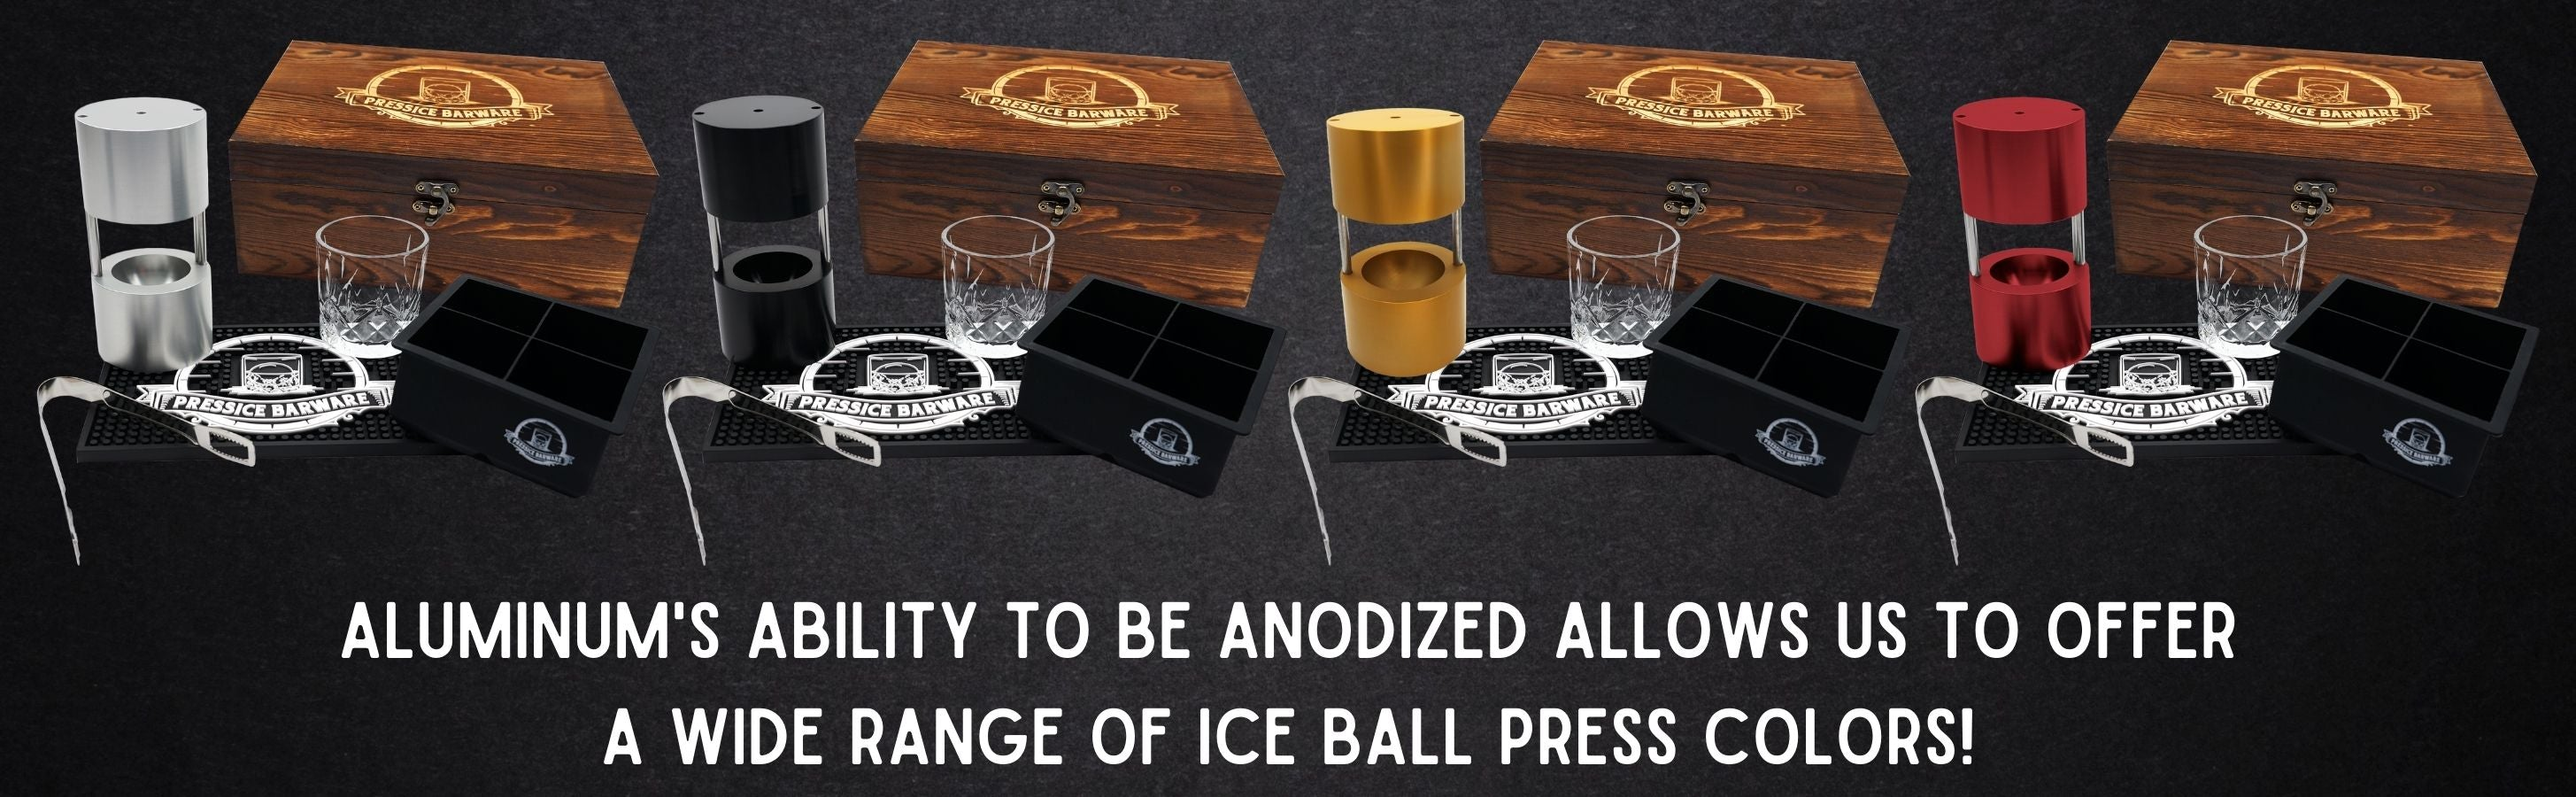 anodized aluminum makes the perfect ice ball press. available in a wide range of colors